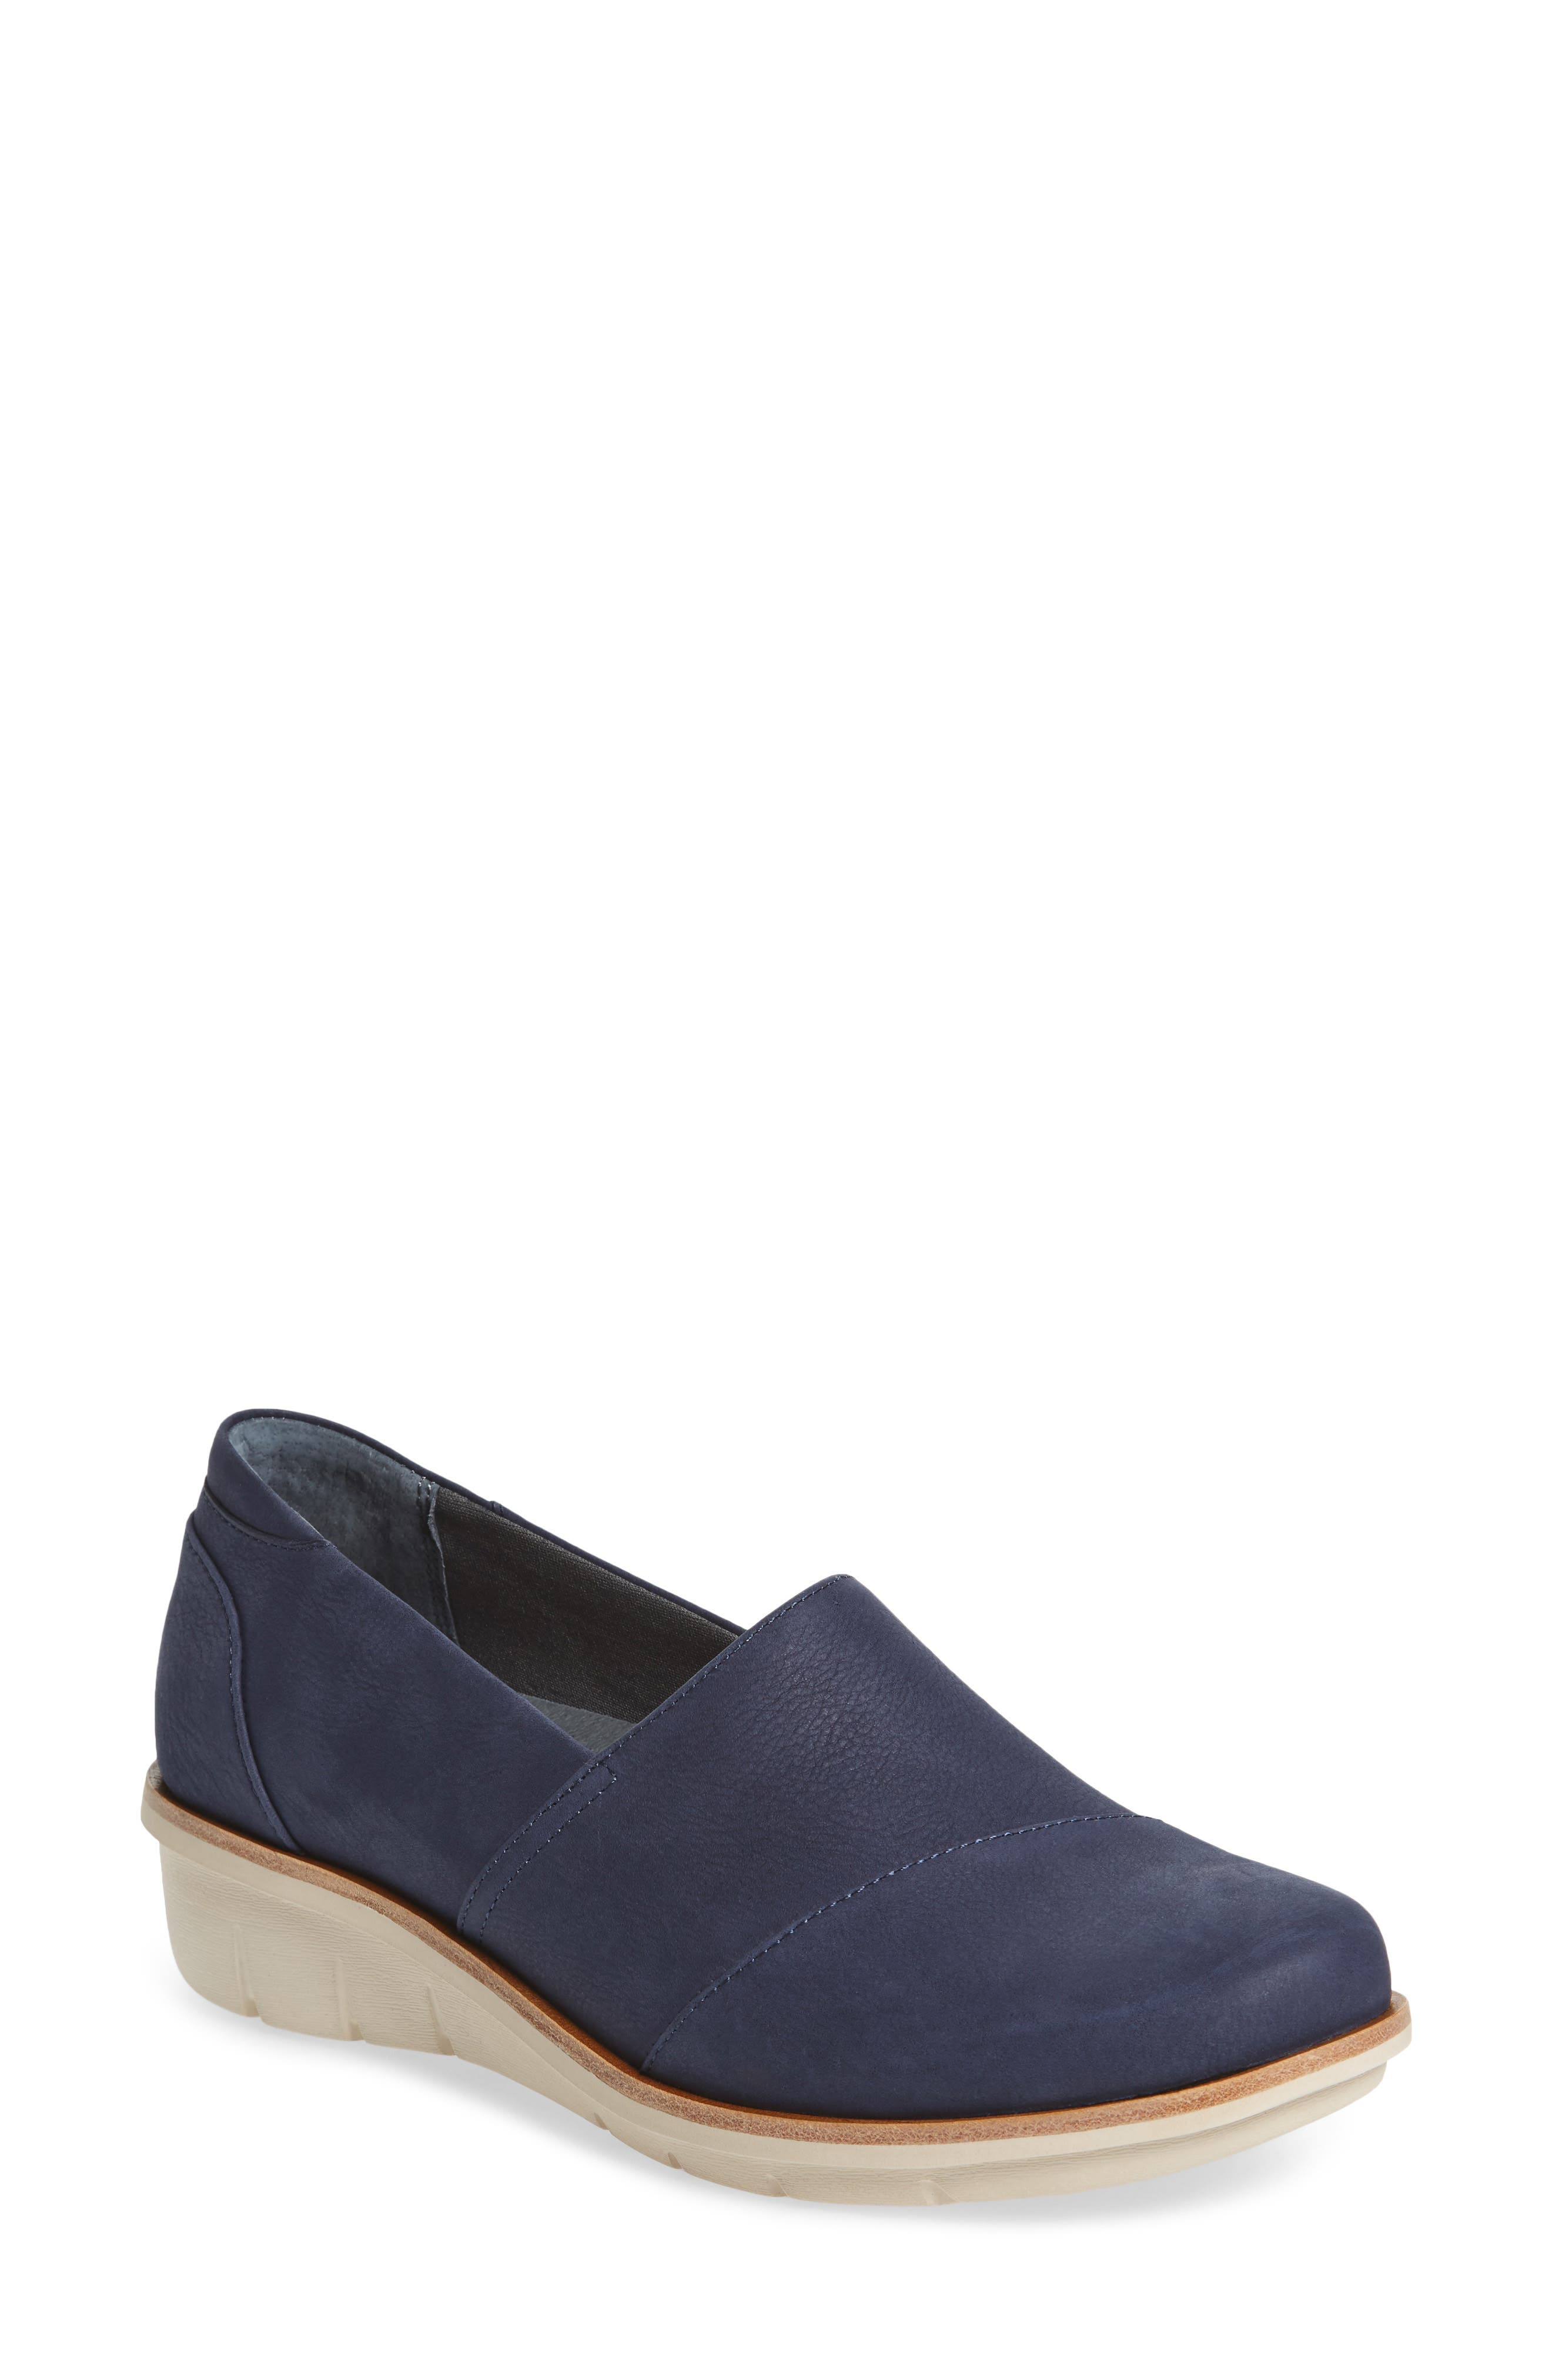 Dankso Julia Wedge Slip-On (Women)